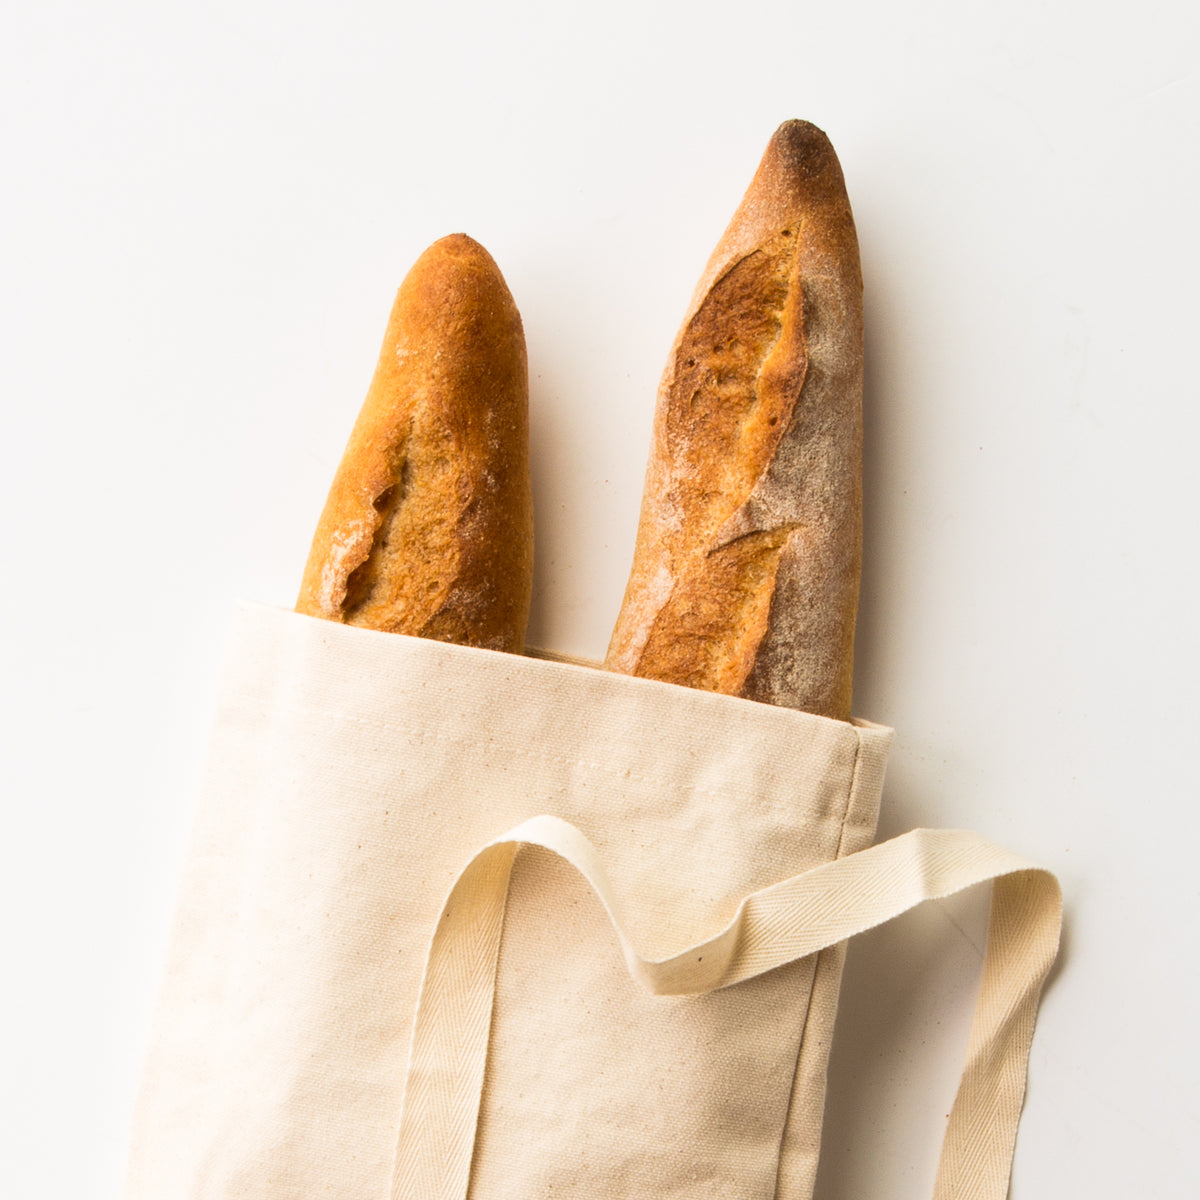 Close Up View - Reusable Baguette Bag - Zero Waste 100% Cotton Bread Bag - Sold by Chic & Basta